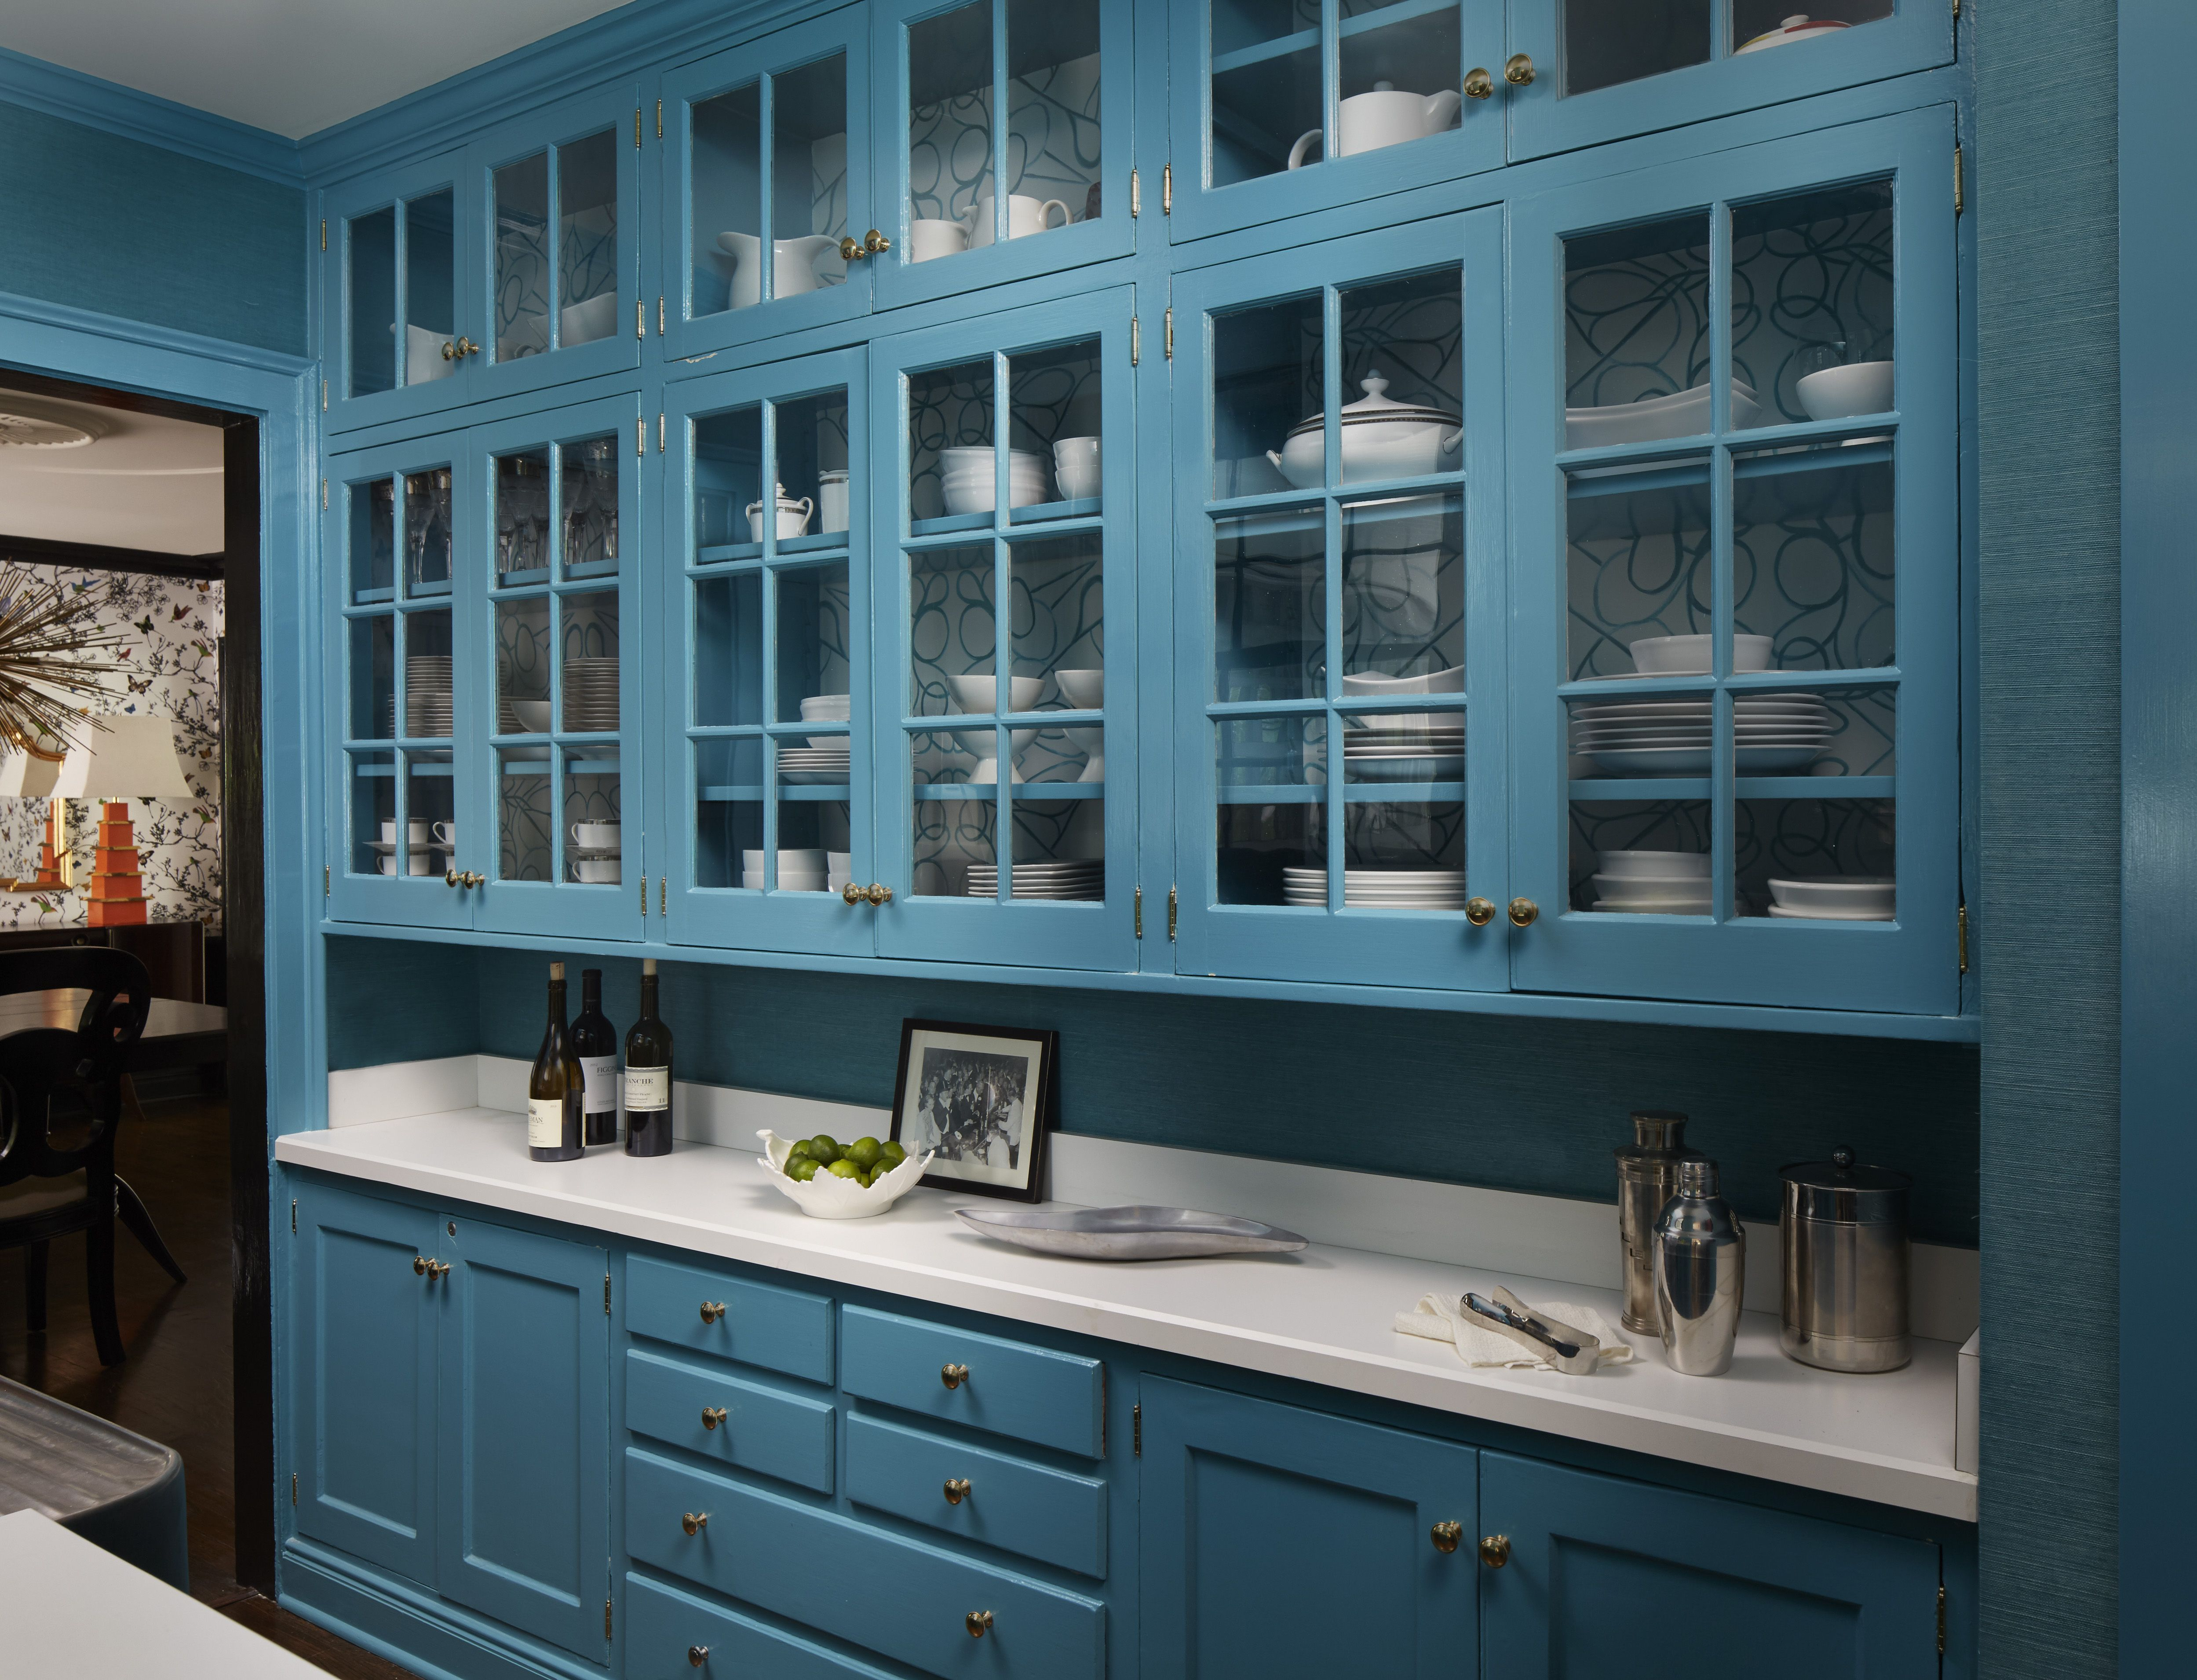 36 Chic Butlers Pantry Ideas - What Is a Butler\'s Pantry?